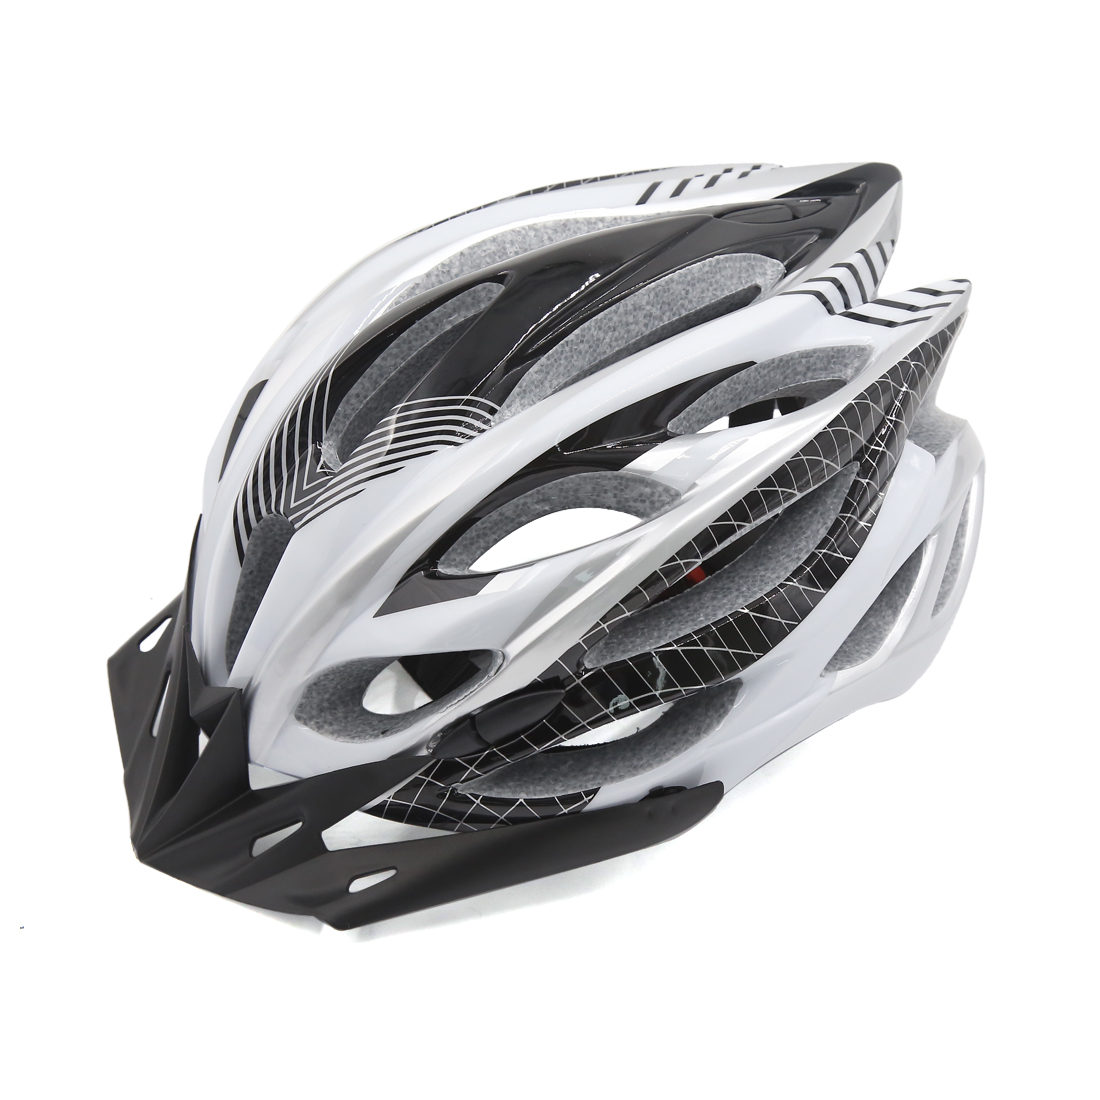 Black White Adjustable Adult Helmet w Visor for Road Bike Racing Bicycle Cycling